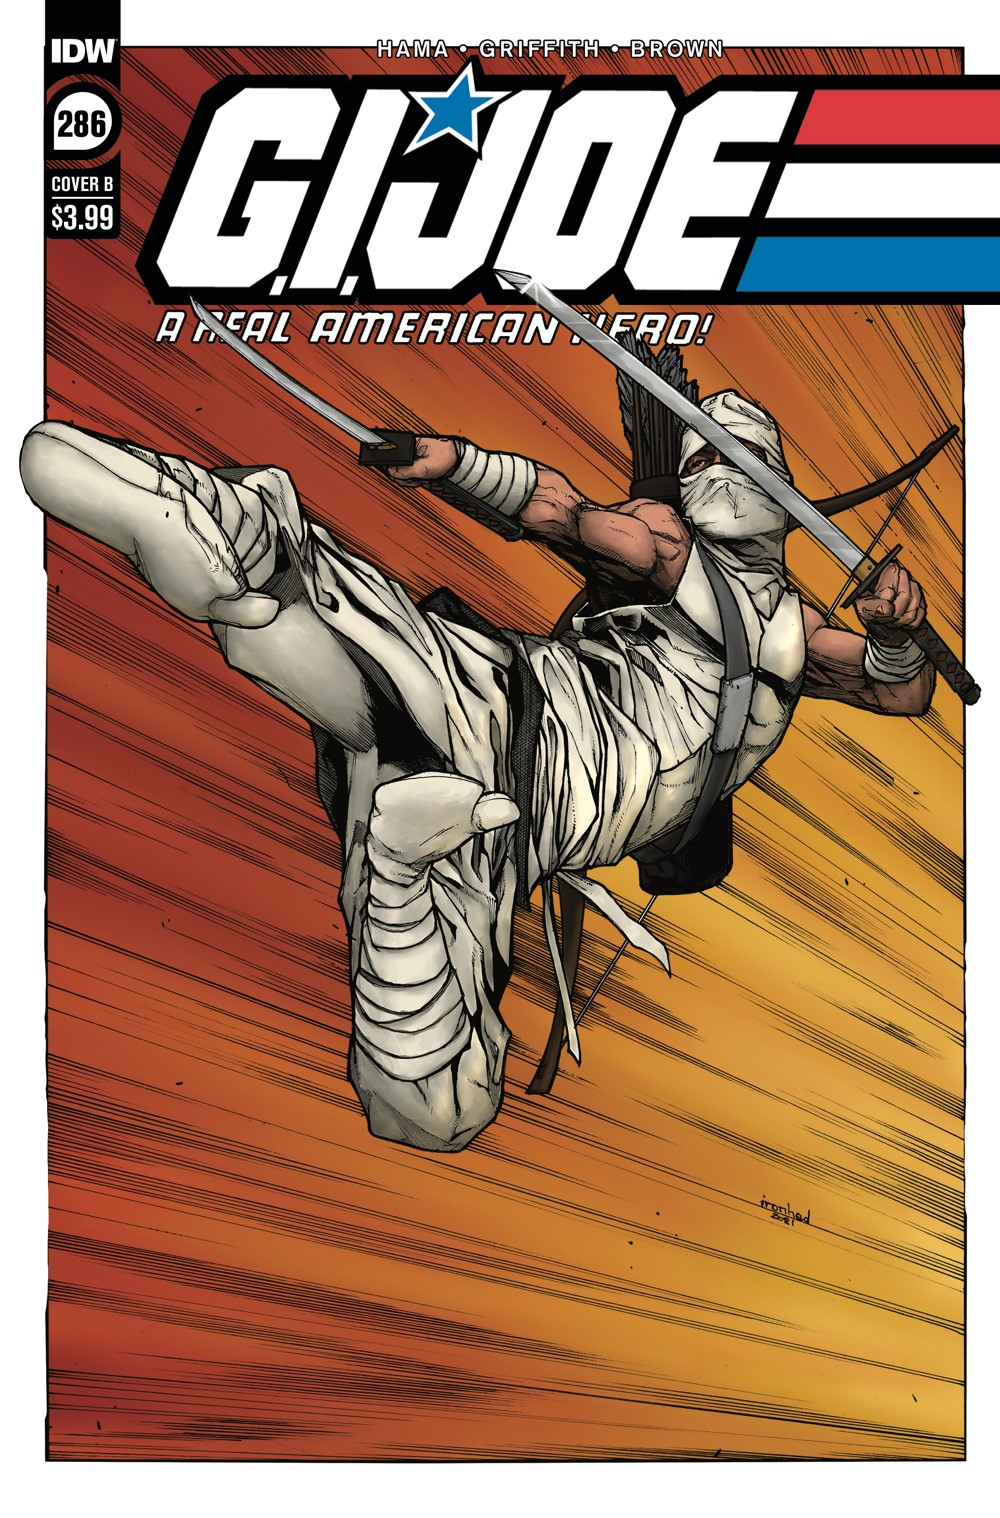 GIJoeRAH286-coverB ComicList: IDW Publishing New Releases for 09/22/2021